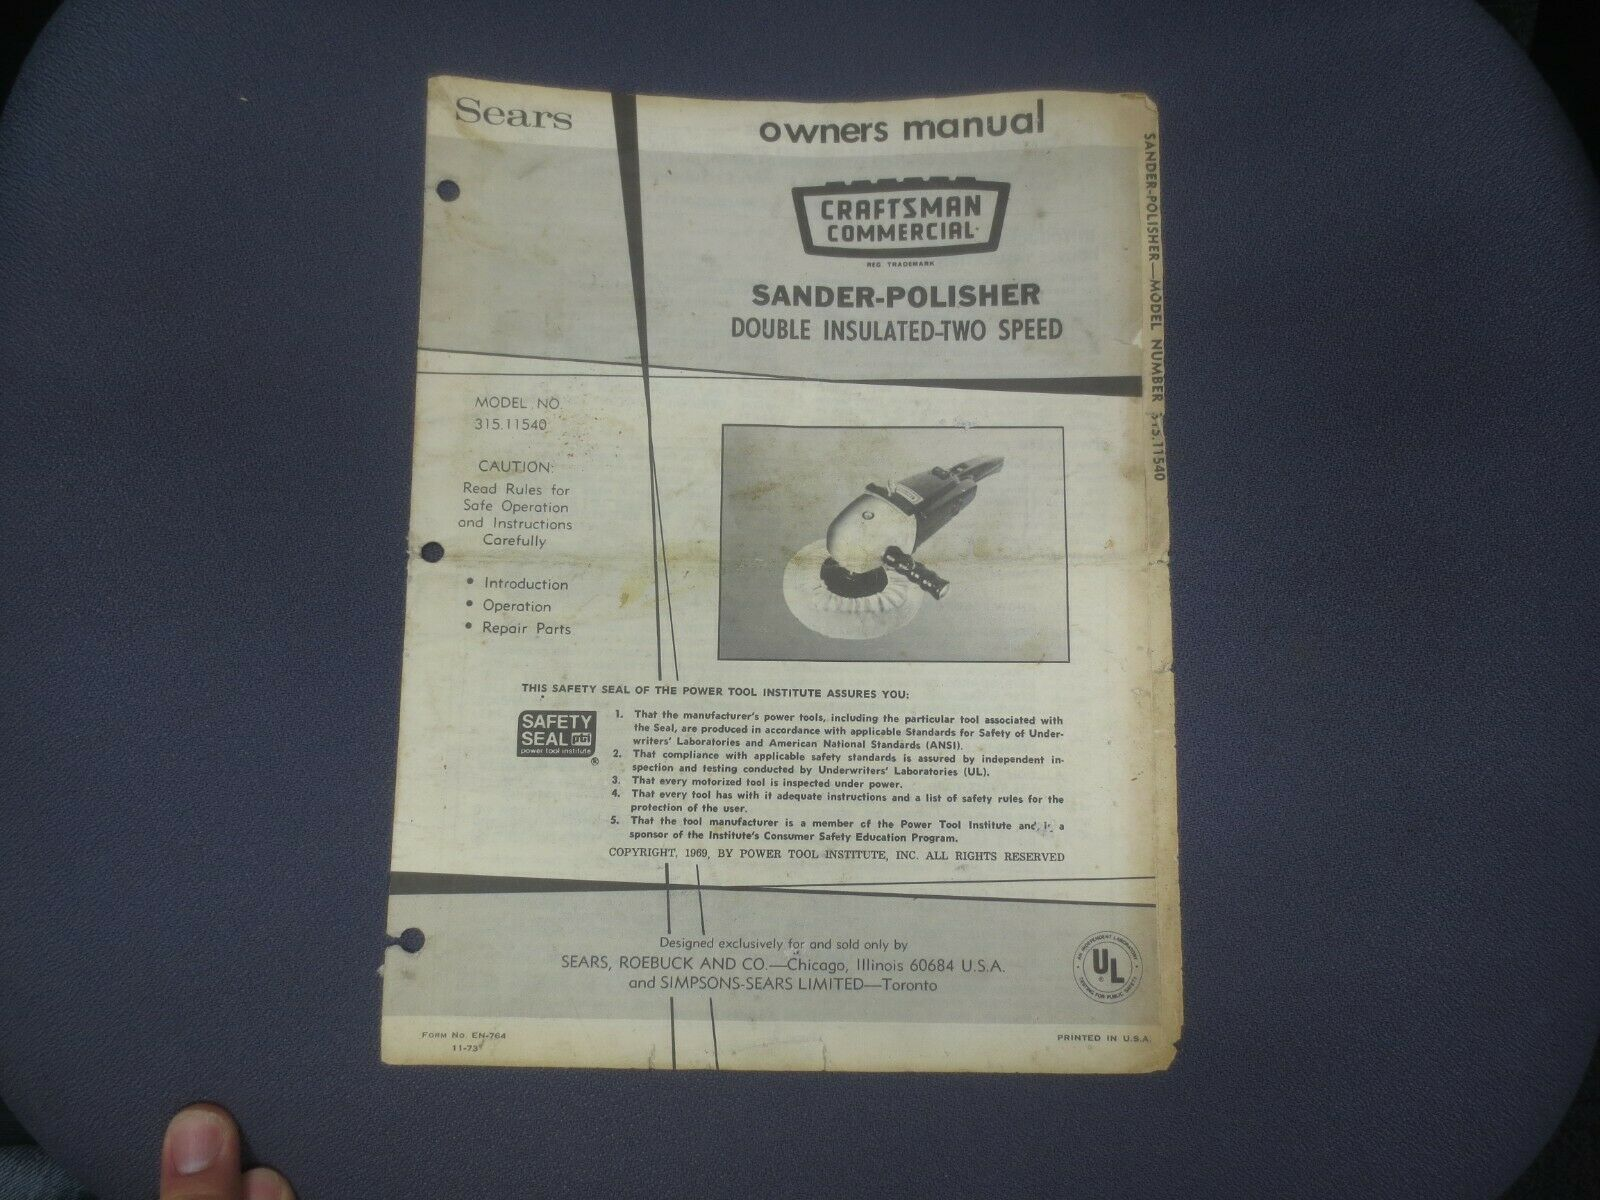 ☆ 1973 Sears Craftsman Owners Manual SANDER - POLISHER - TWO SPEED - INSULATED